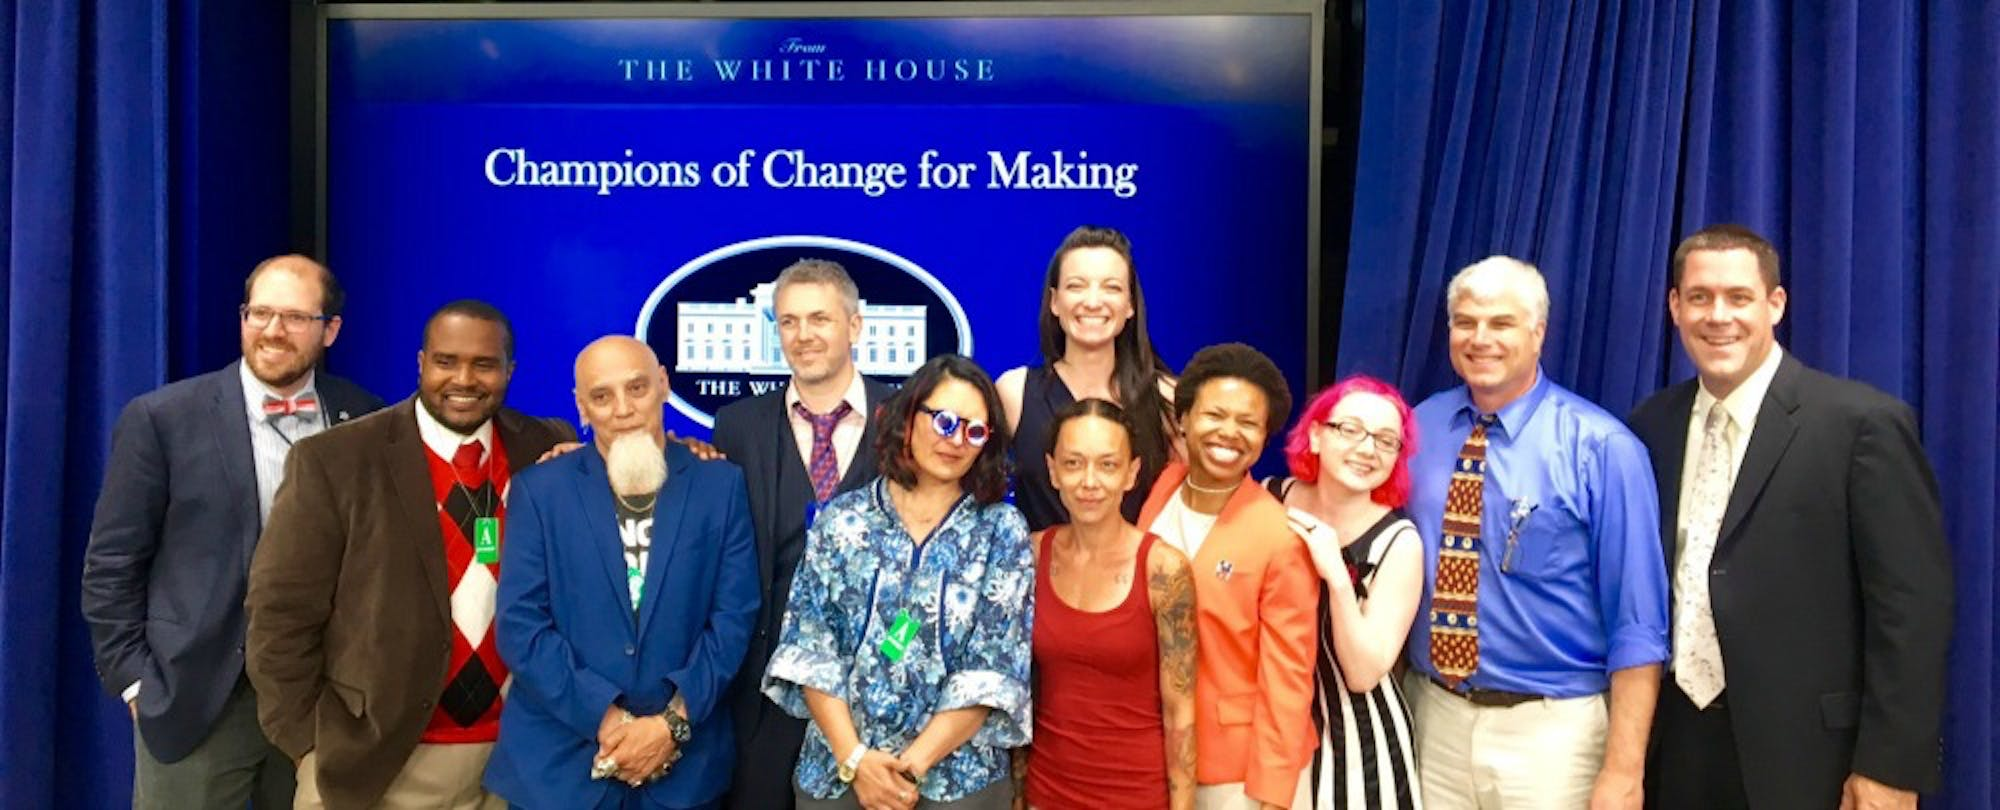 What Did You Make Today? White House Recognizes 10 Making Champions